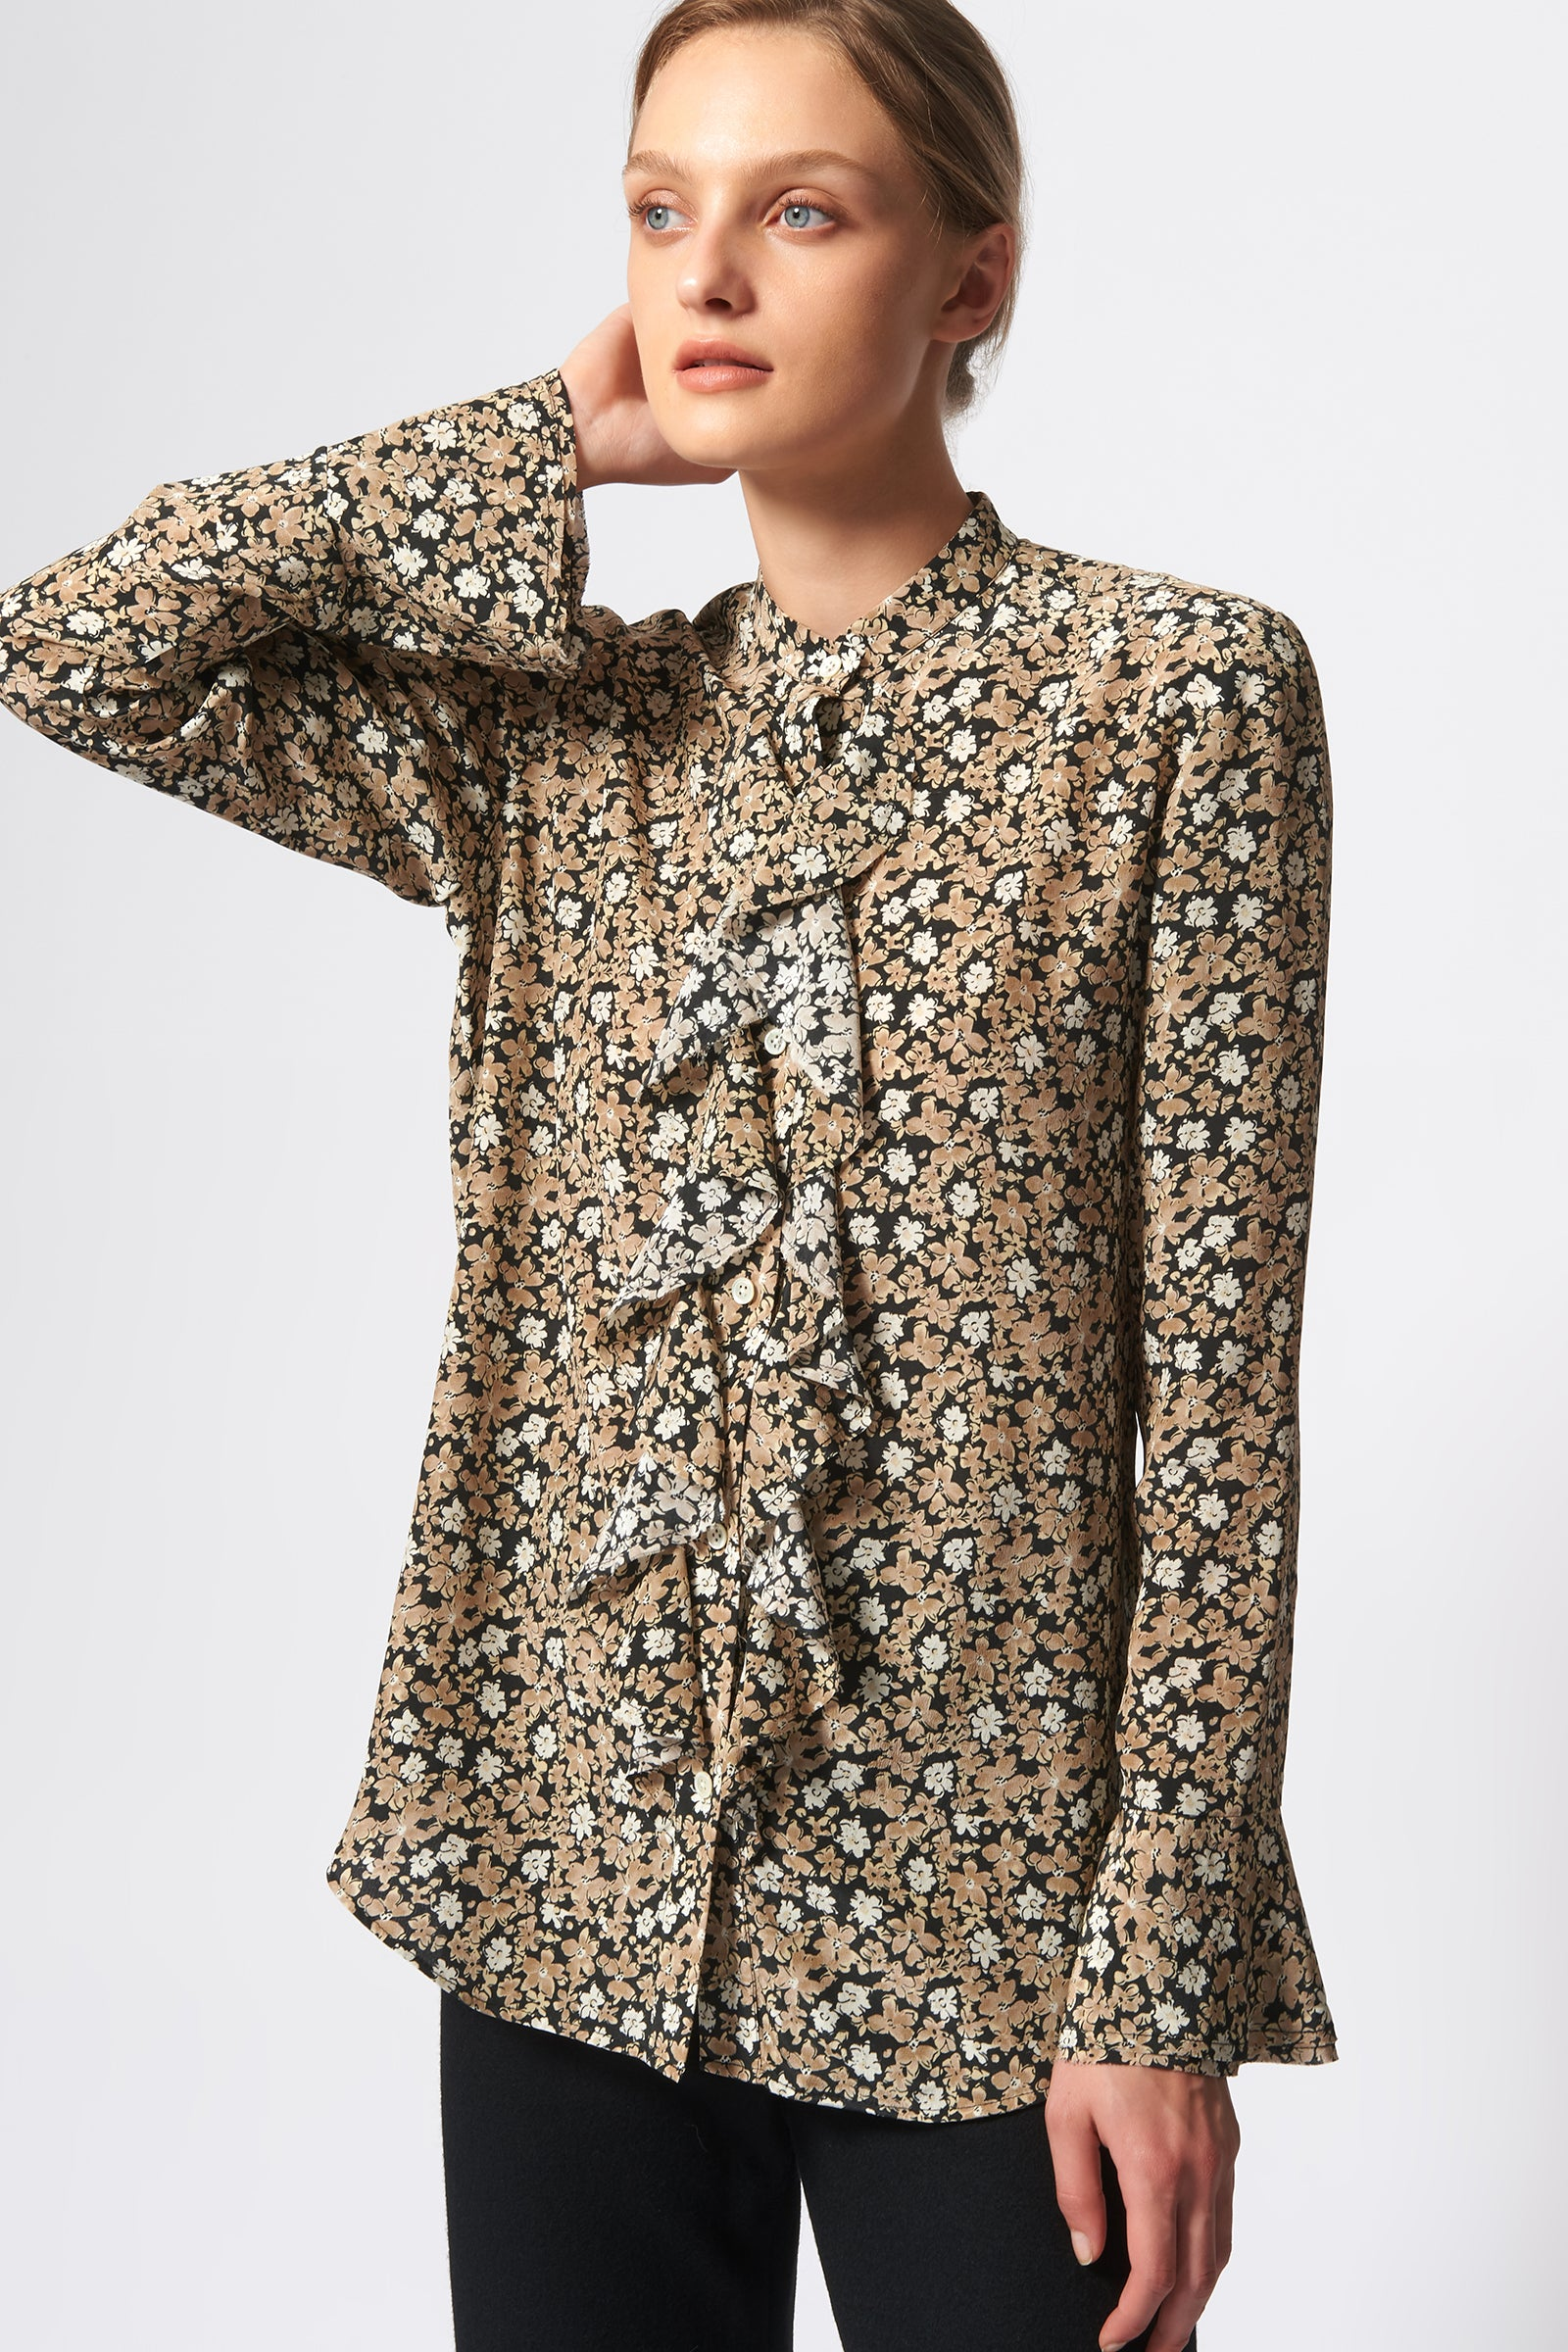 Kal Rieman Ruffle Front Blouse in Black Floral Print on Model Front View